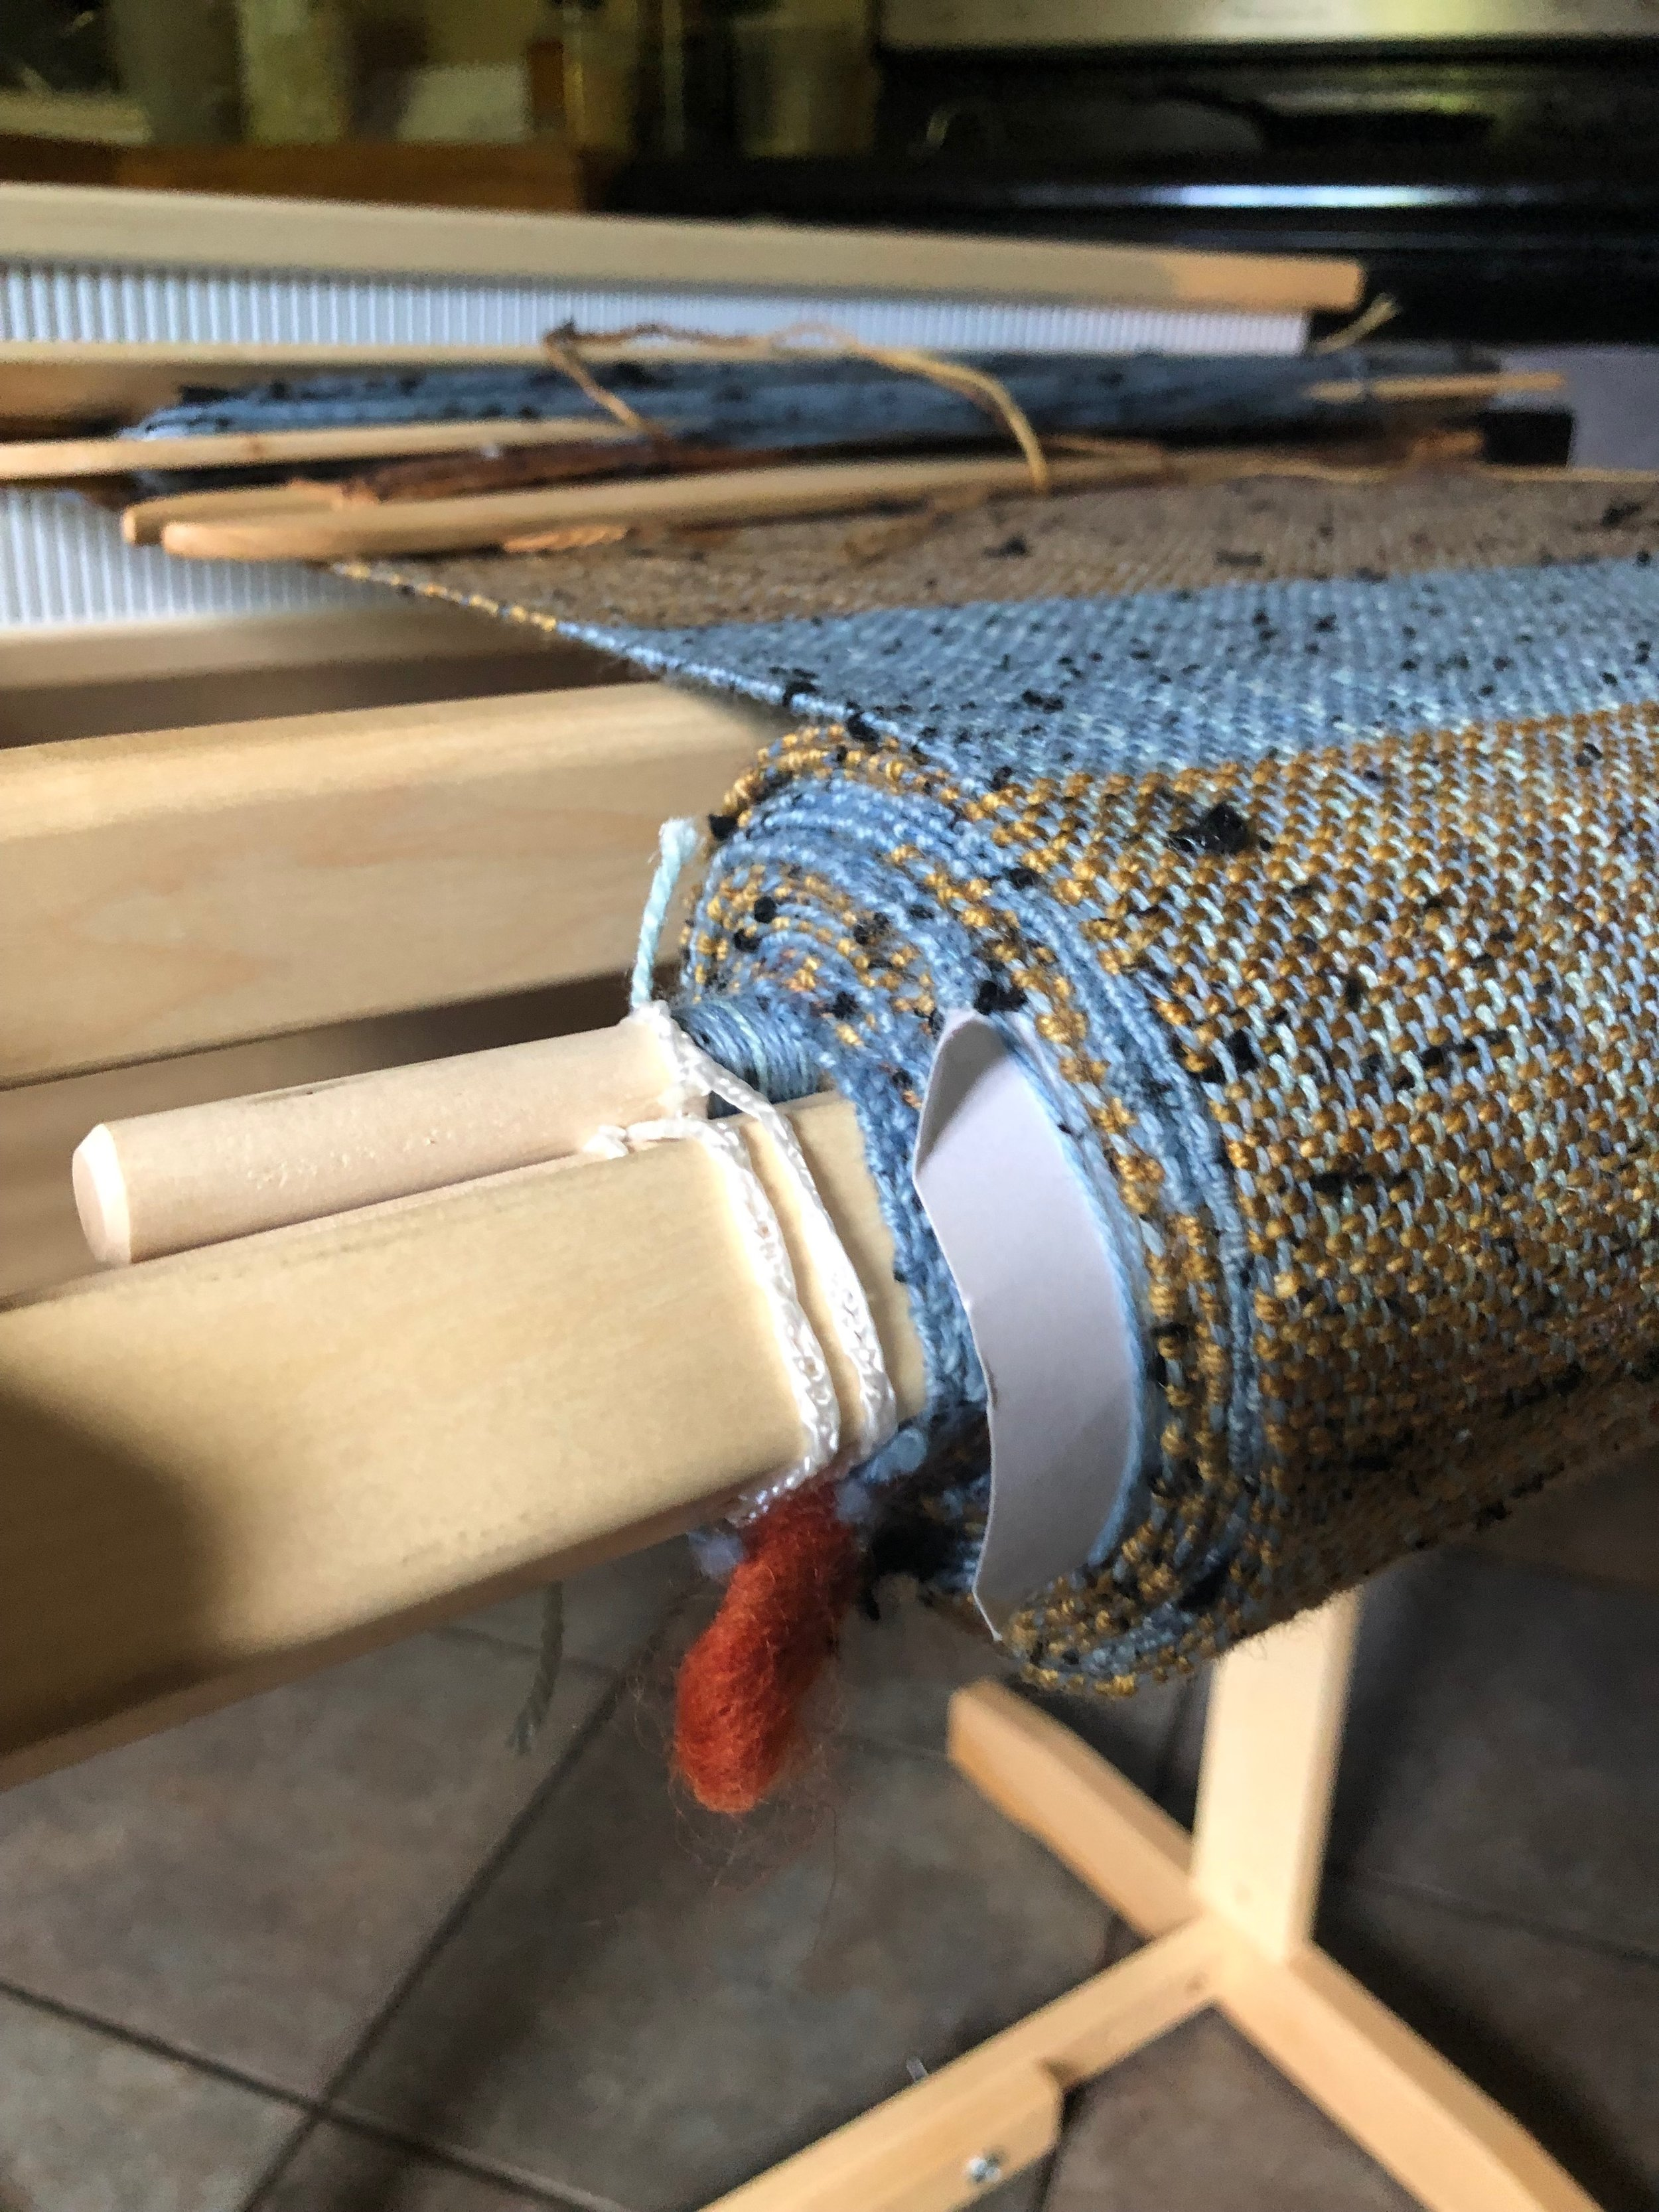 Roll of handwoven fabric in blue and gold on a loom.